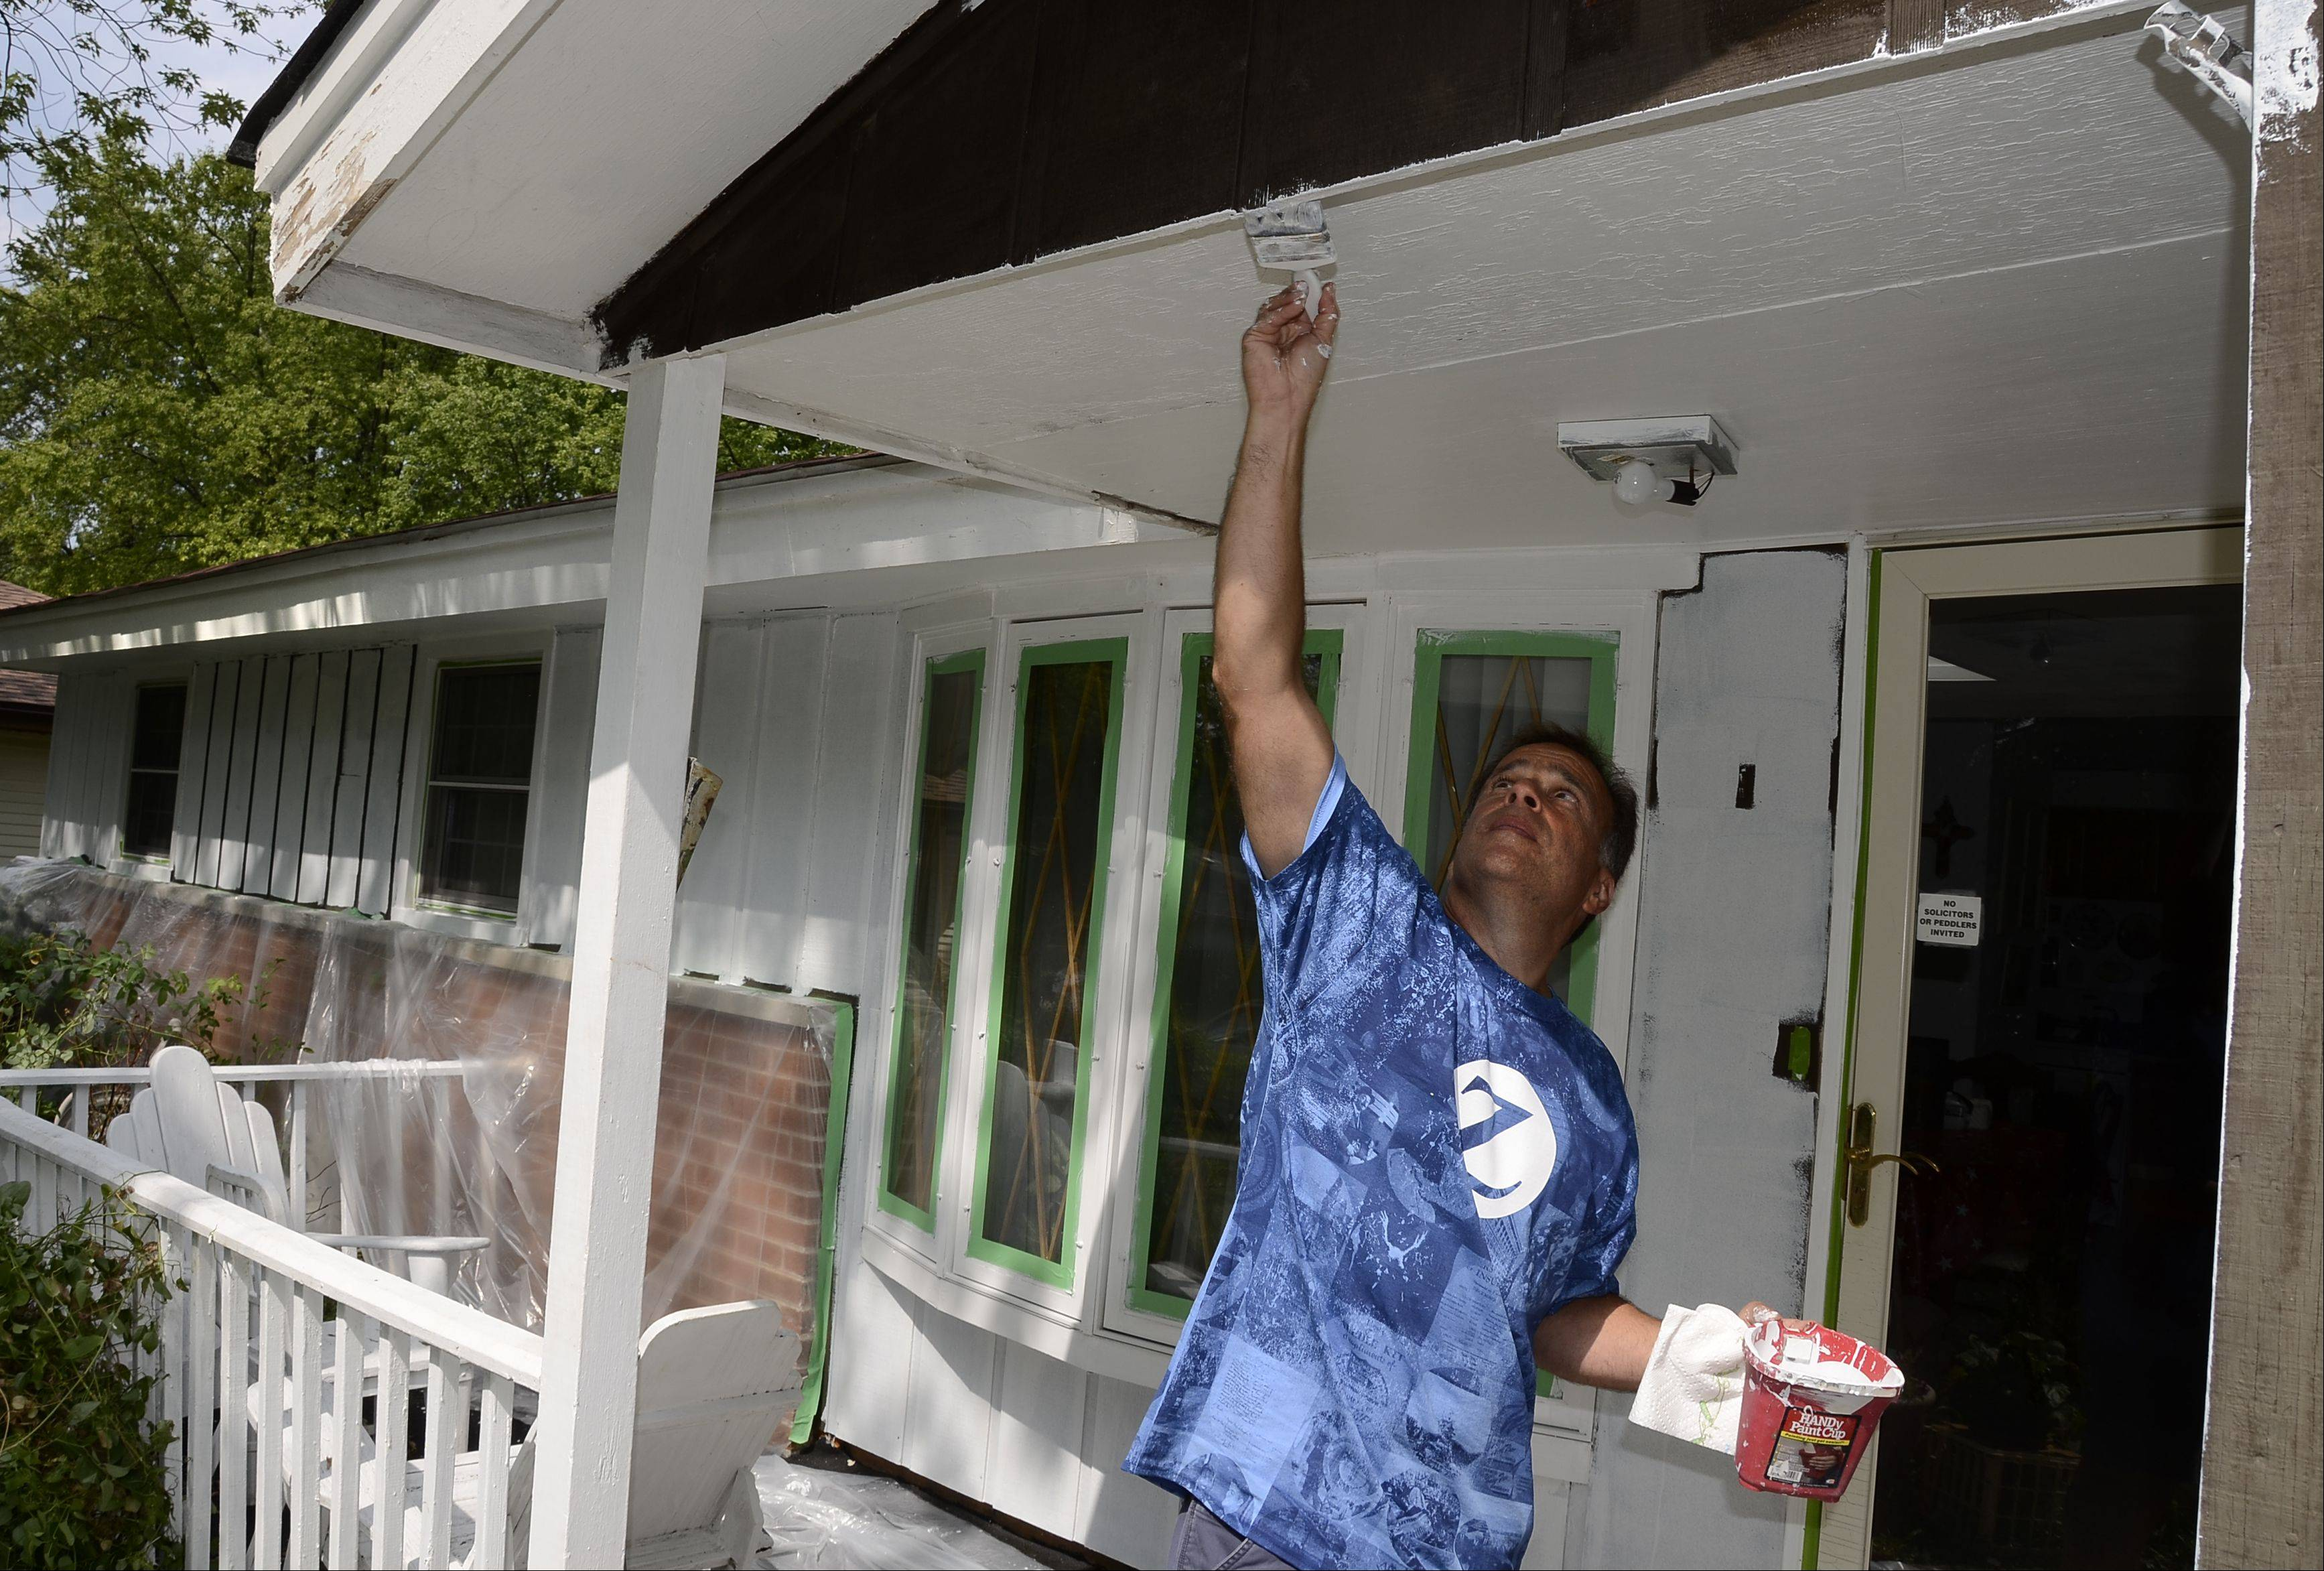 Mark Puccio, a resident of Hoffman Estates and a member of Team Zurich, helps paint Alice Barmann's house Friday in Schaumburg as part of the Habitat for Hummanity 25th Community Paint-a-thon.